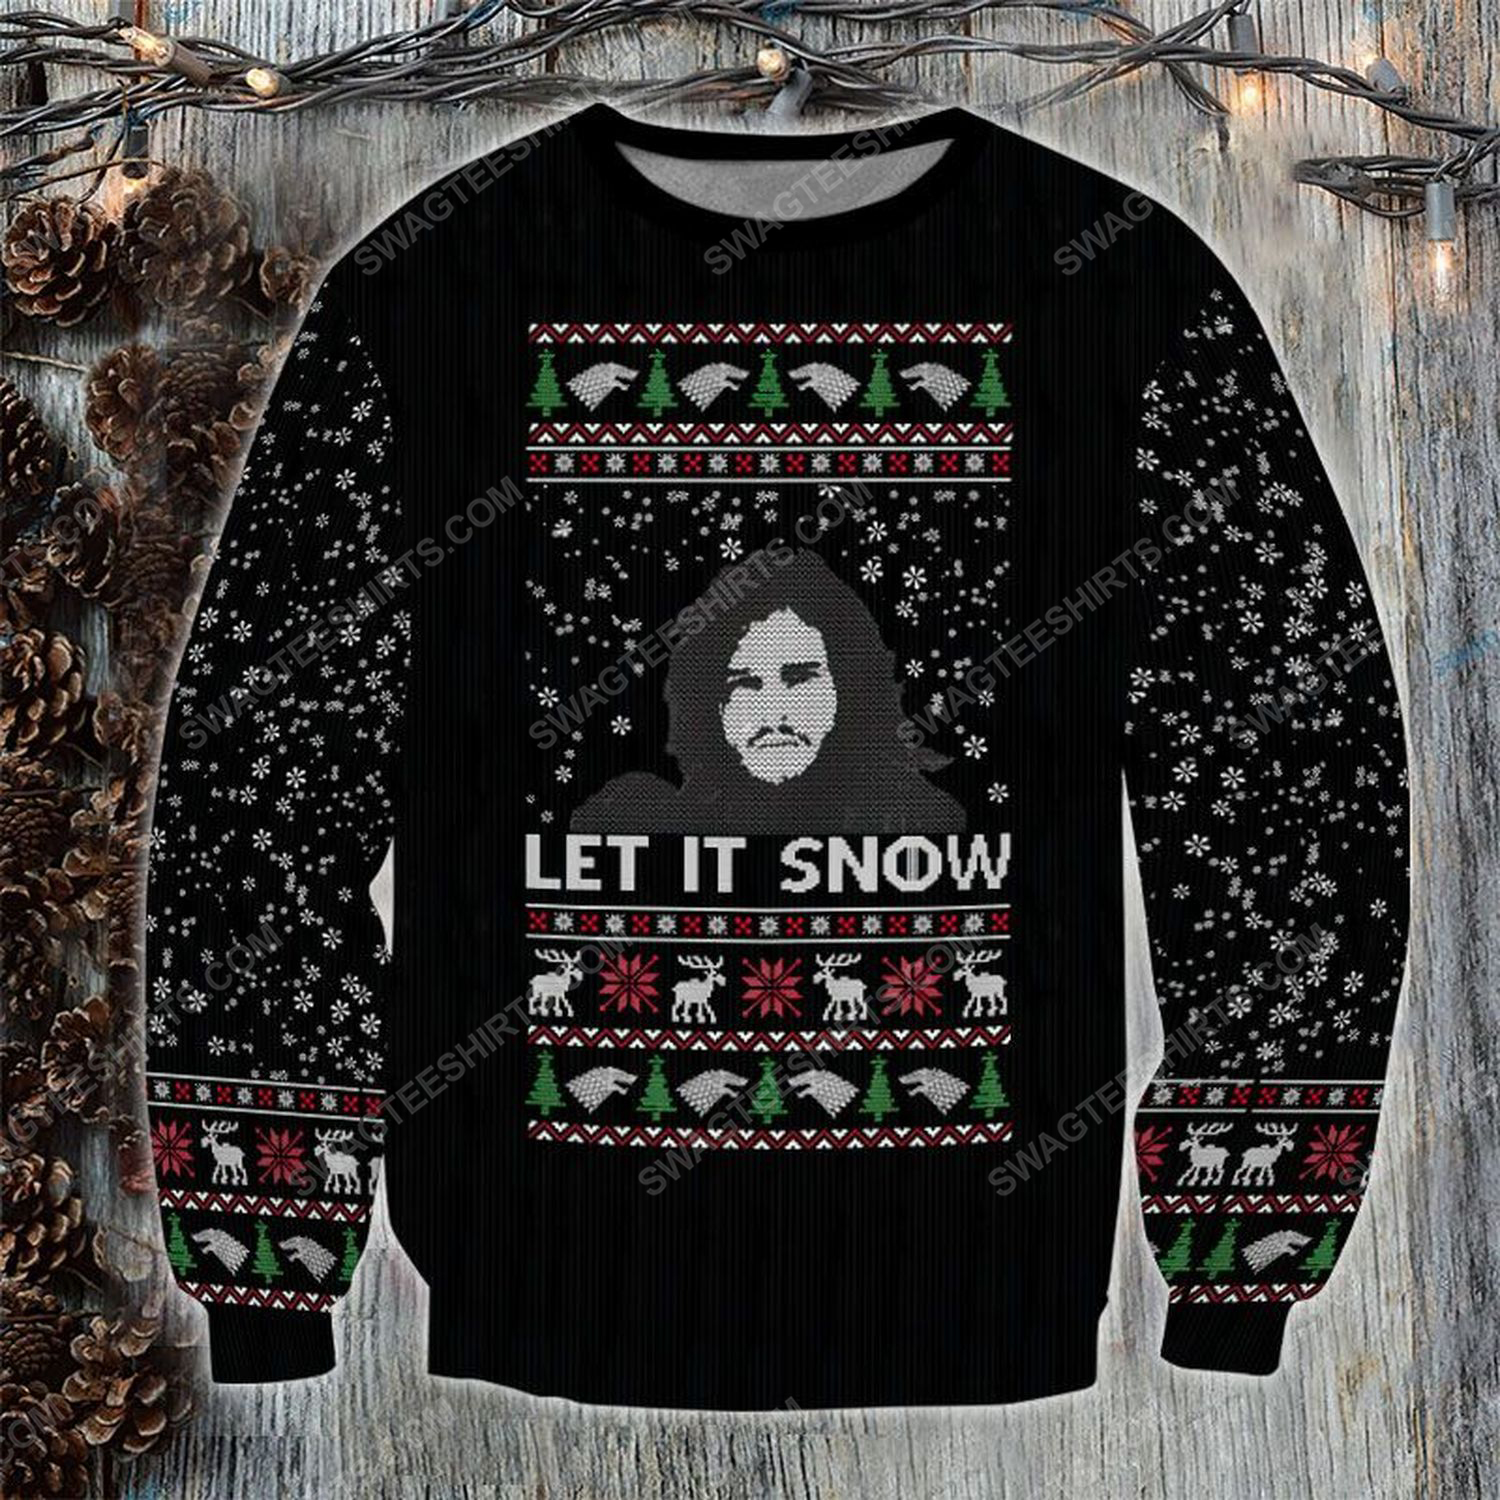 Let it snow game of thrones ugly christmas sweater